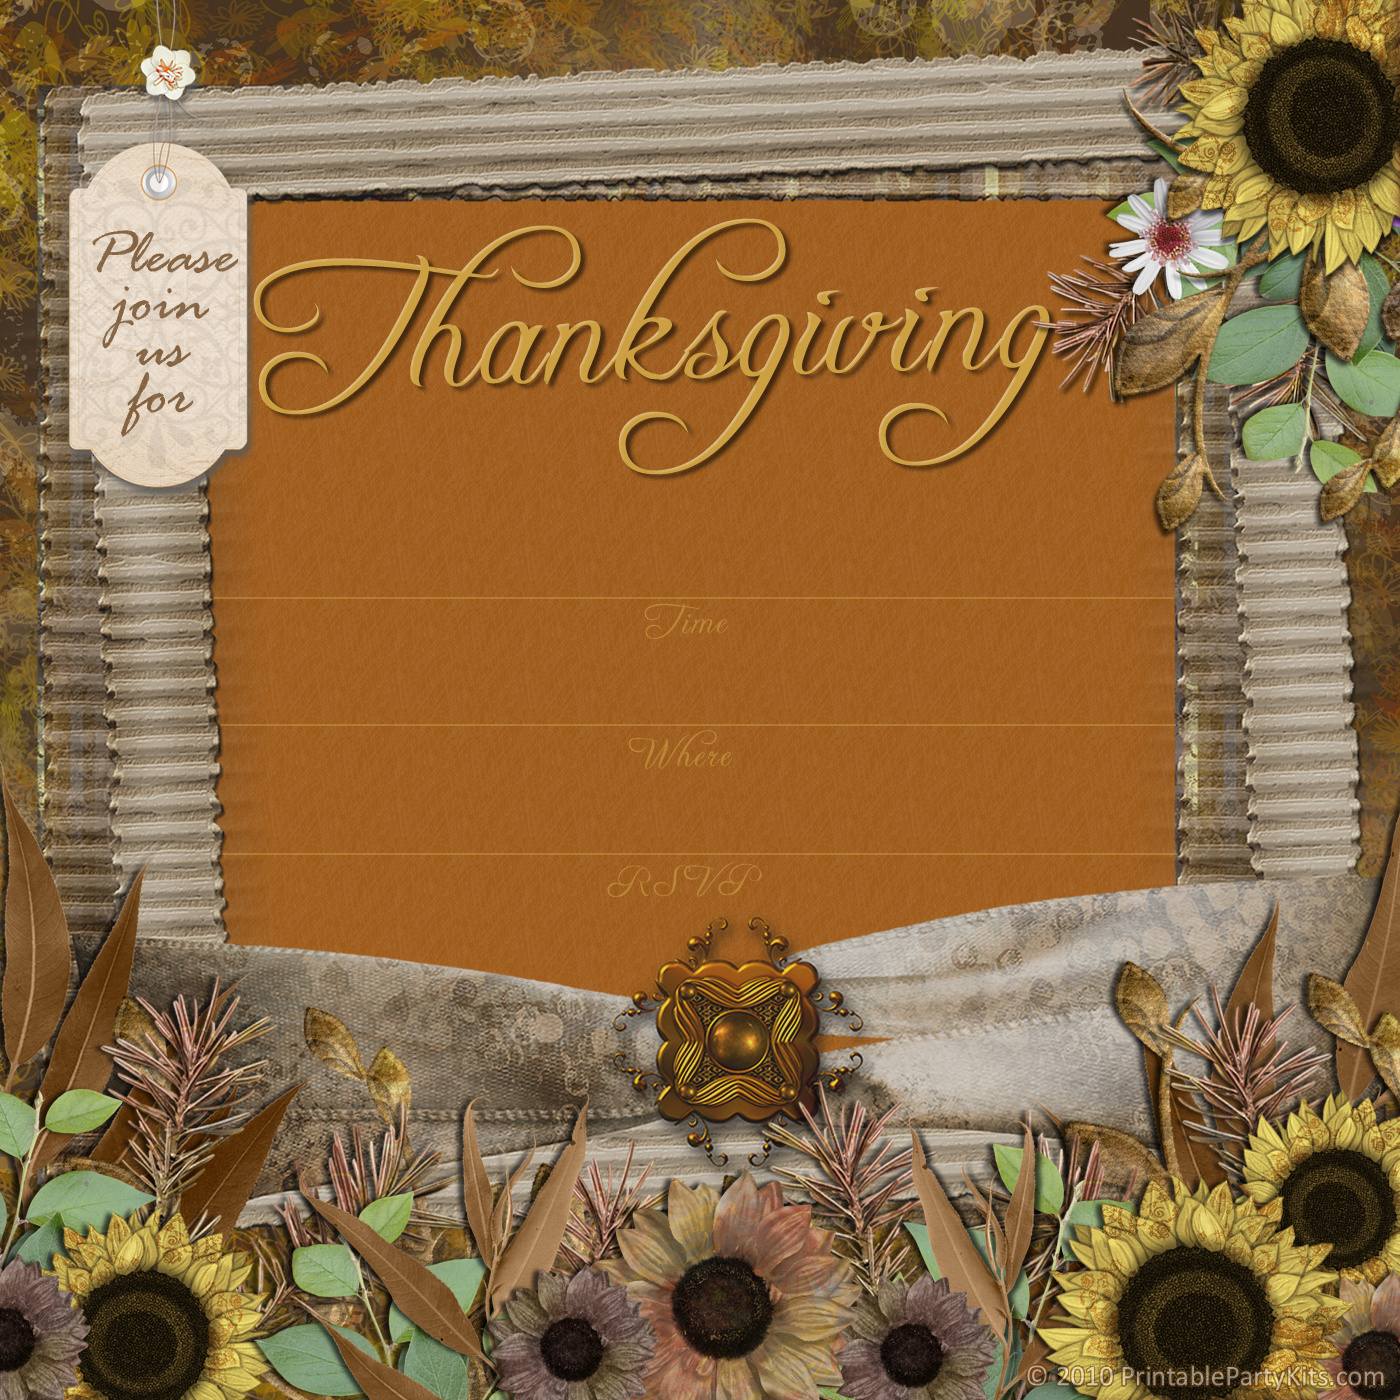 Free Printable Party Invitations Thanksgiving Dinner Party